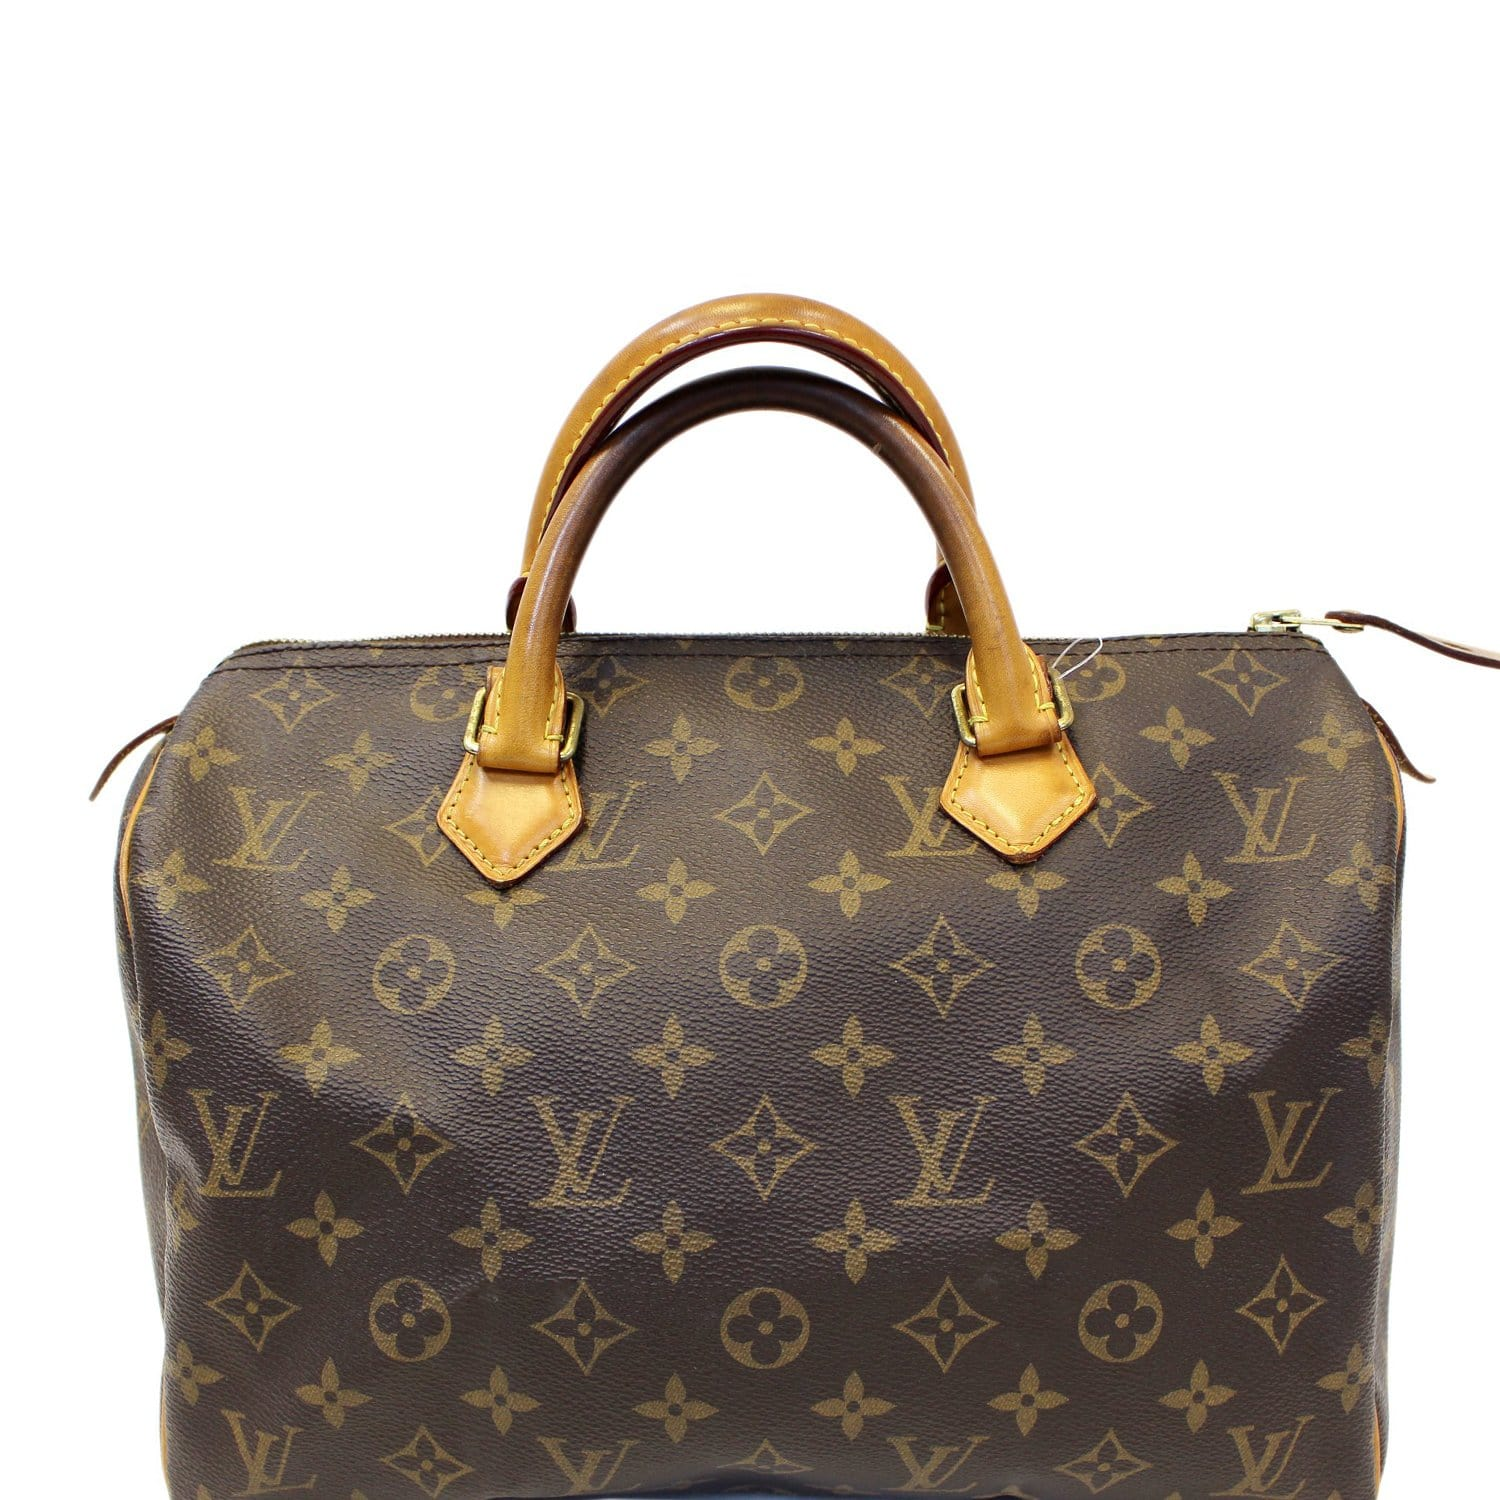 c59aca0fadcf LOUIS VUITTON Speedy 30 Monogram Canvas Satchel Bag